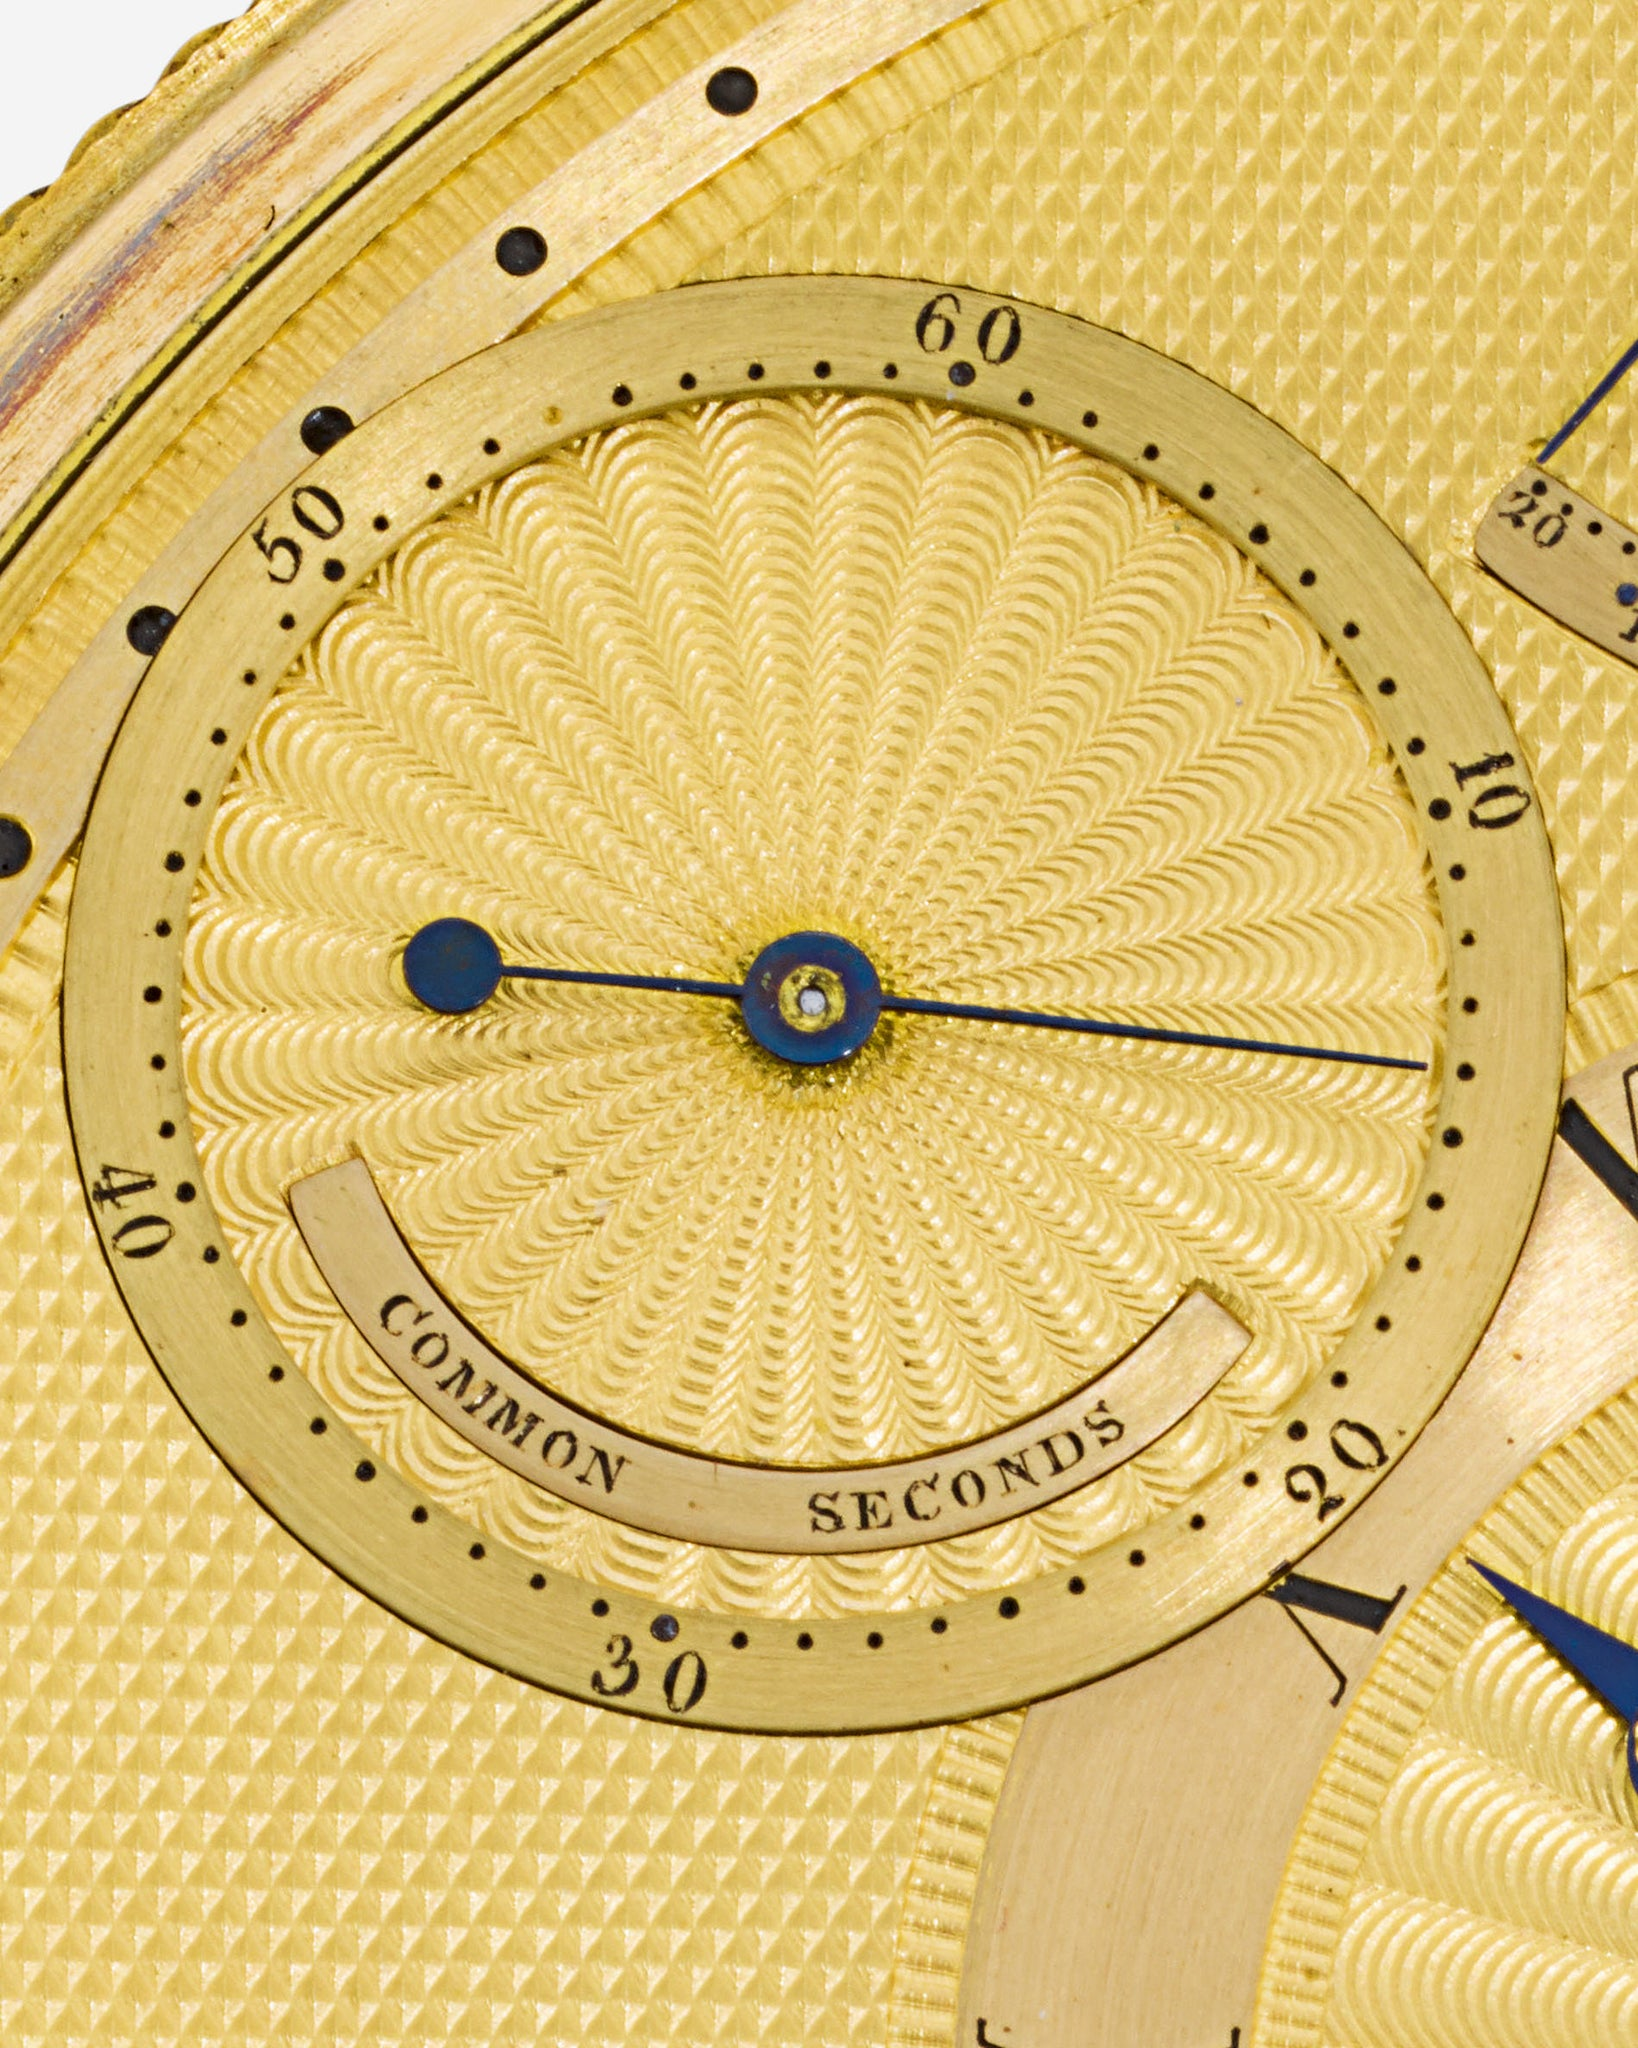 The common seconds sub-dial on King George's III's watch made by Breguet